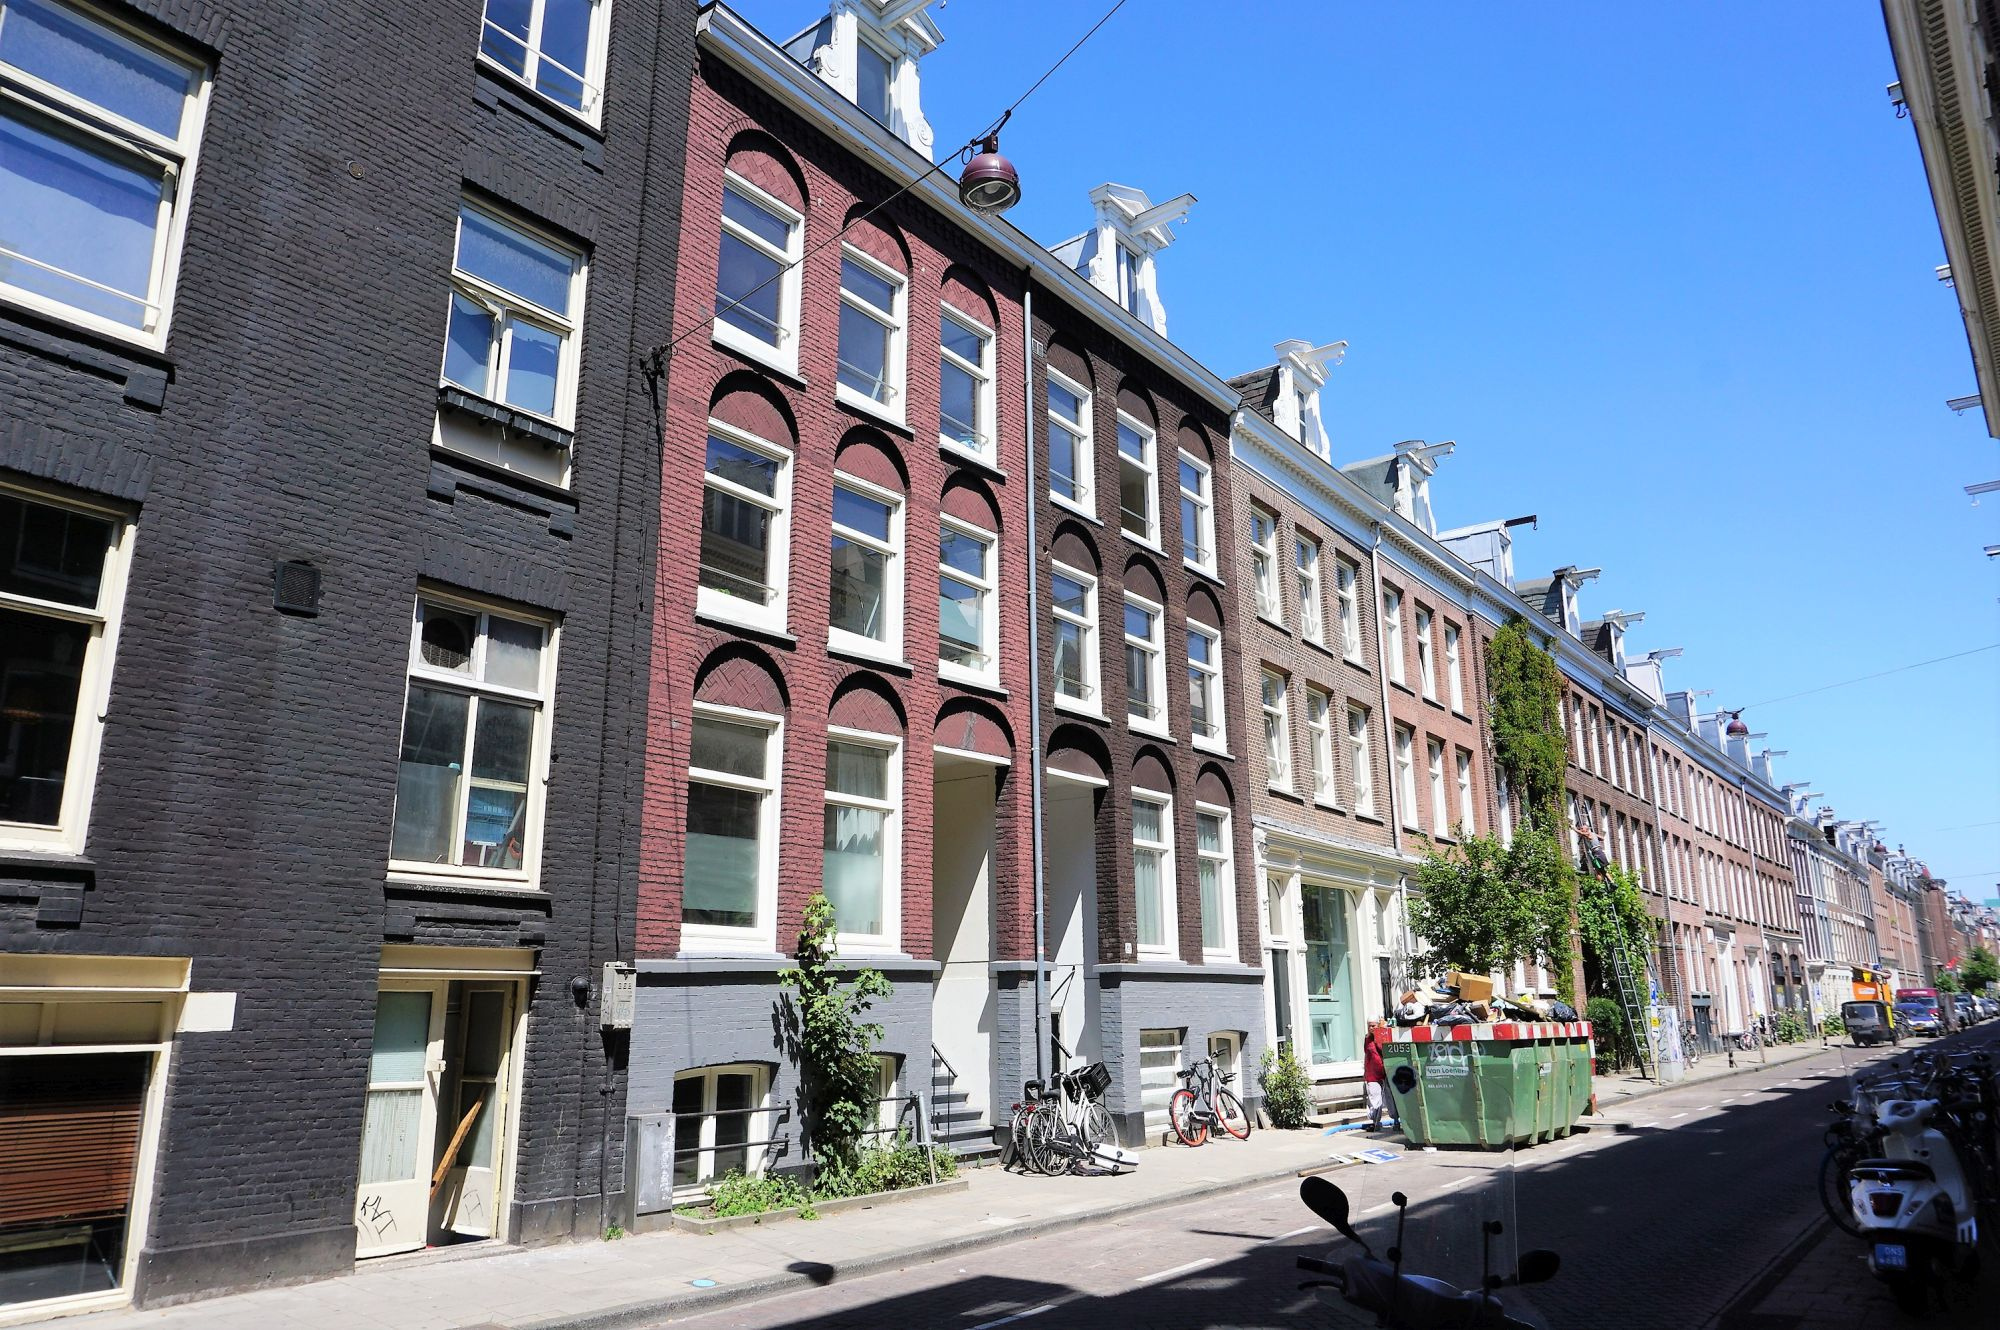 Govert Flinckstraat, Amsterdam